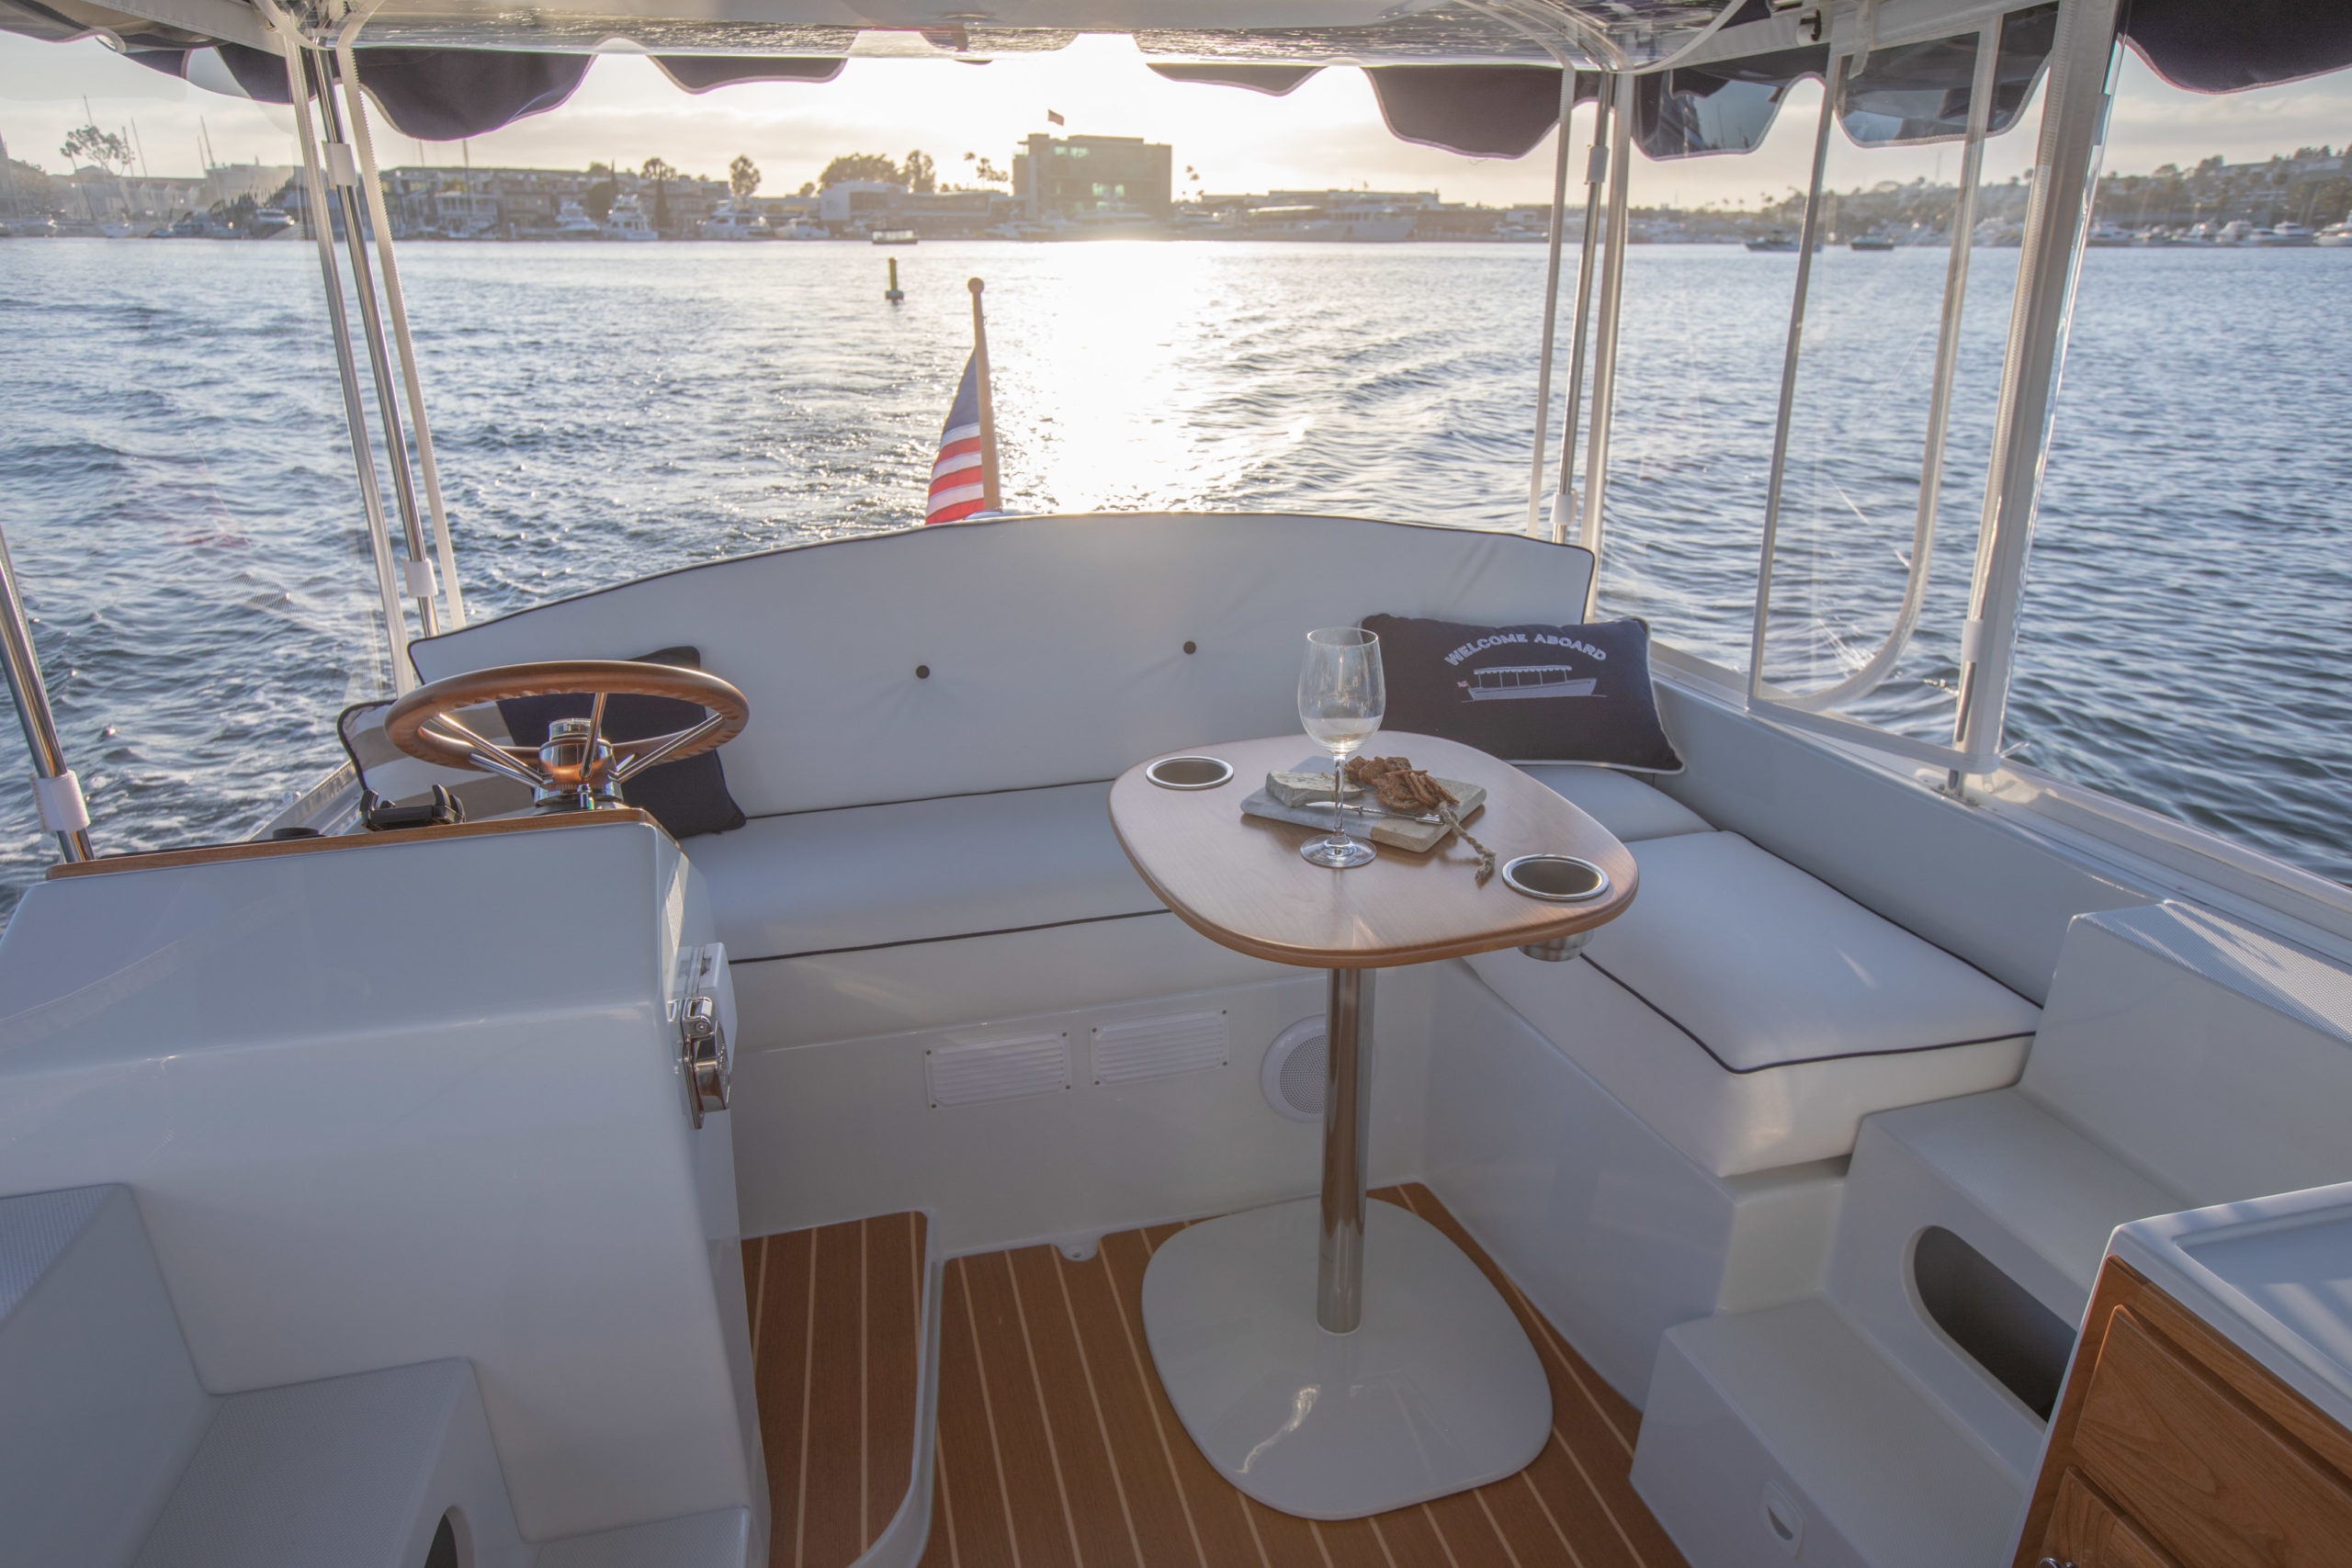 Duffy-Electric-Boats-18-Snug-Harbor-Interior-2020-8